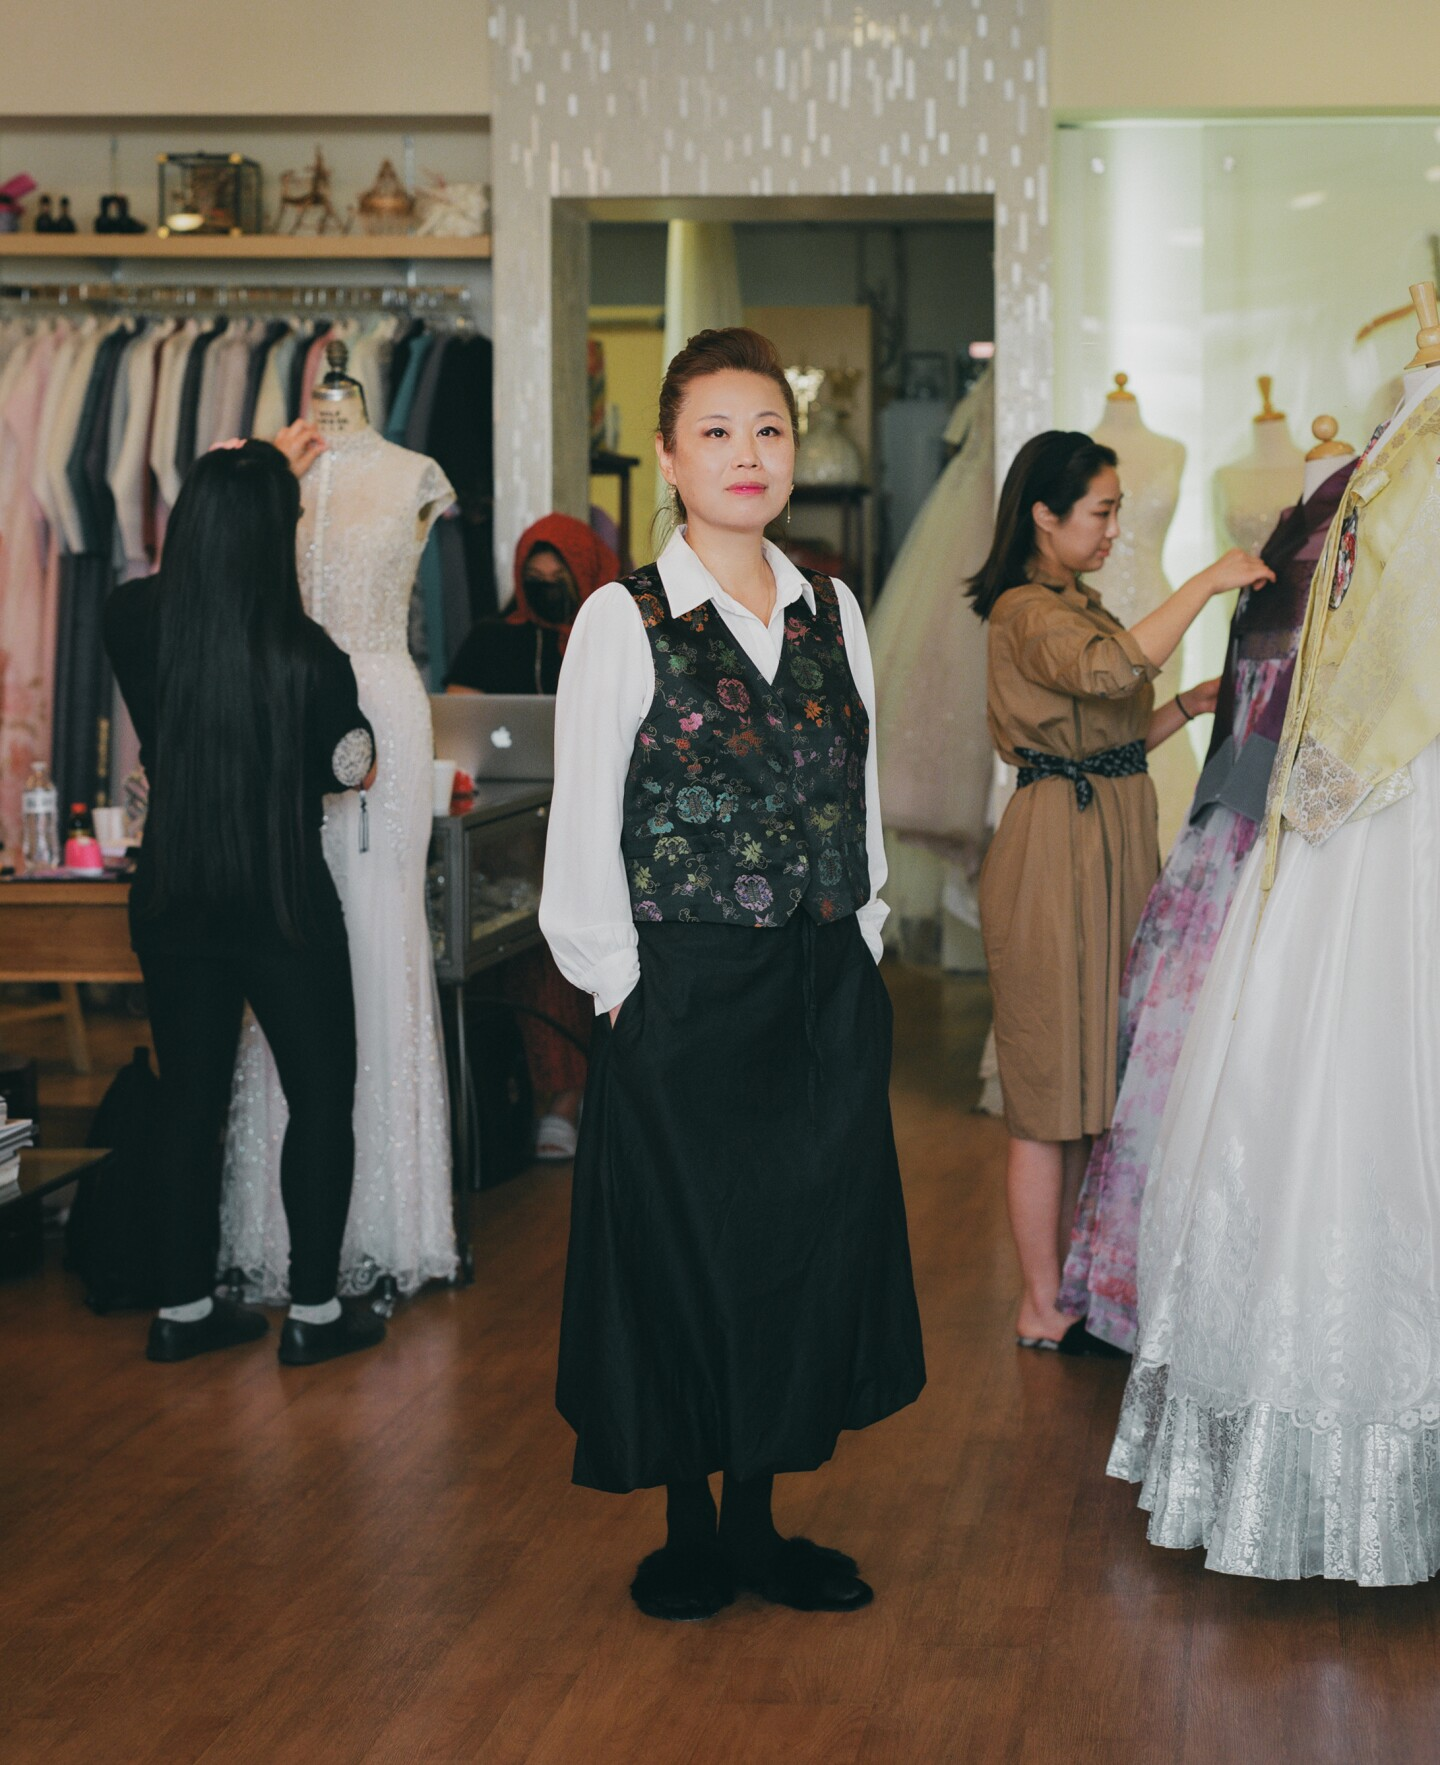 Laura, a hanbok maker, stands in her shop with dresses and tailors.